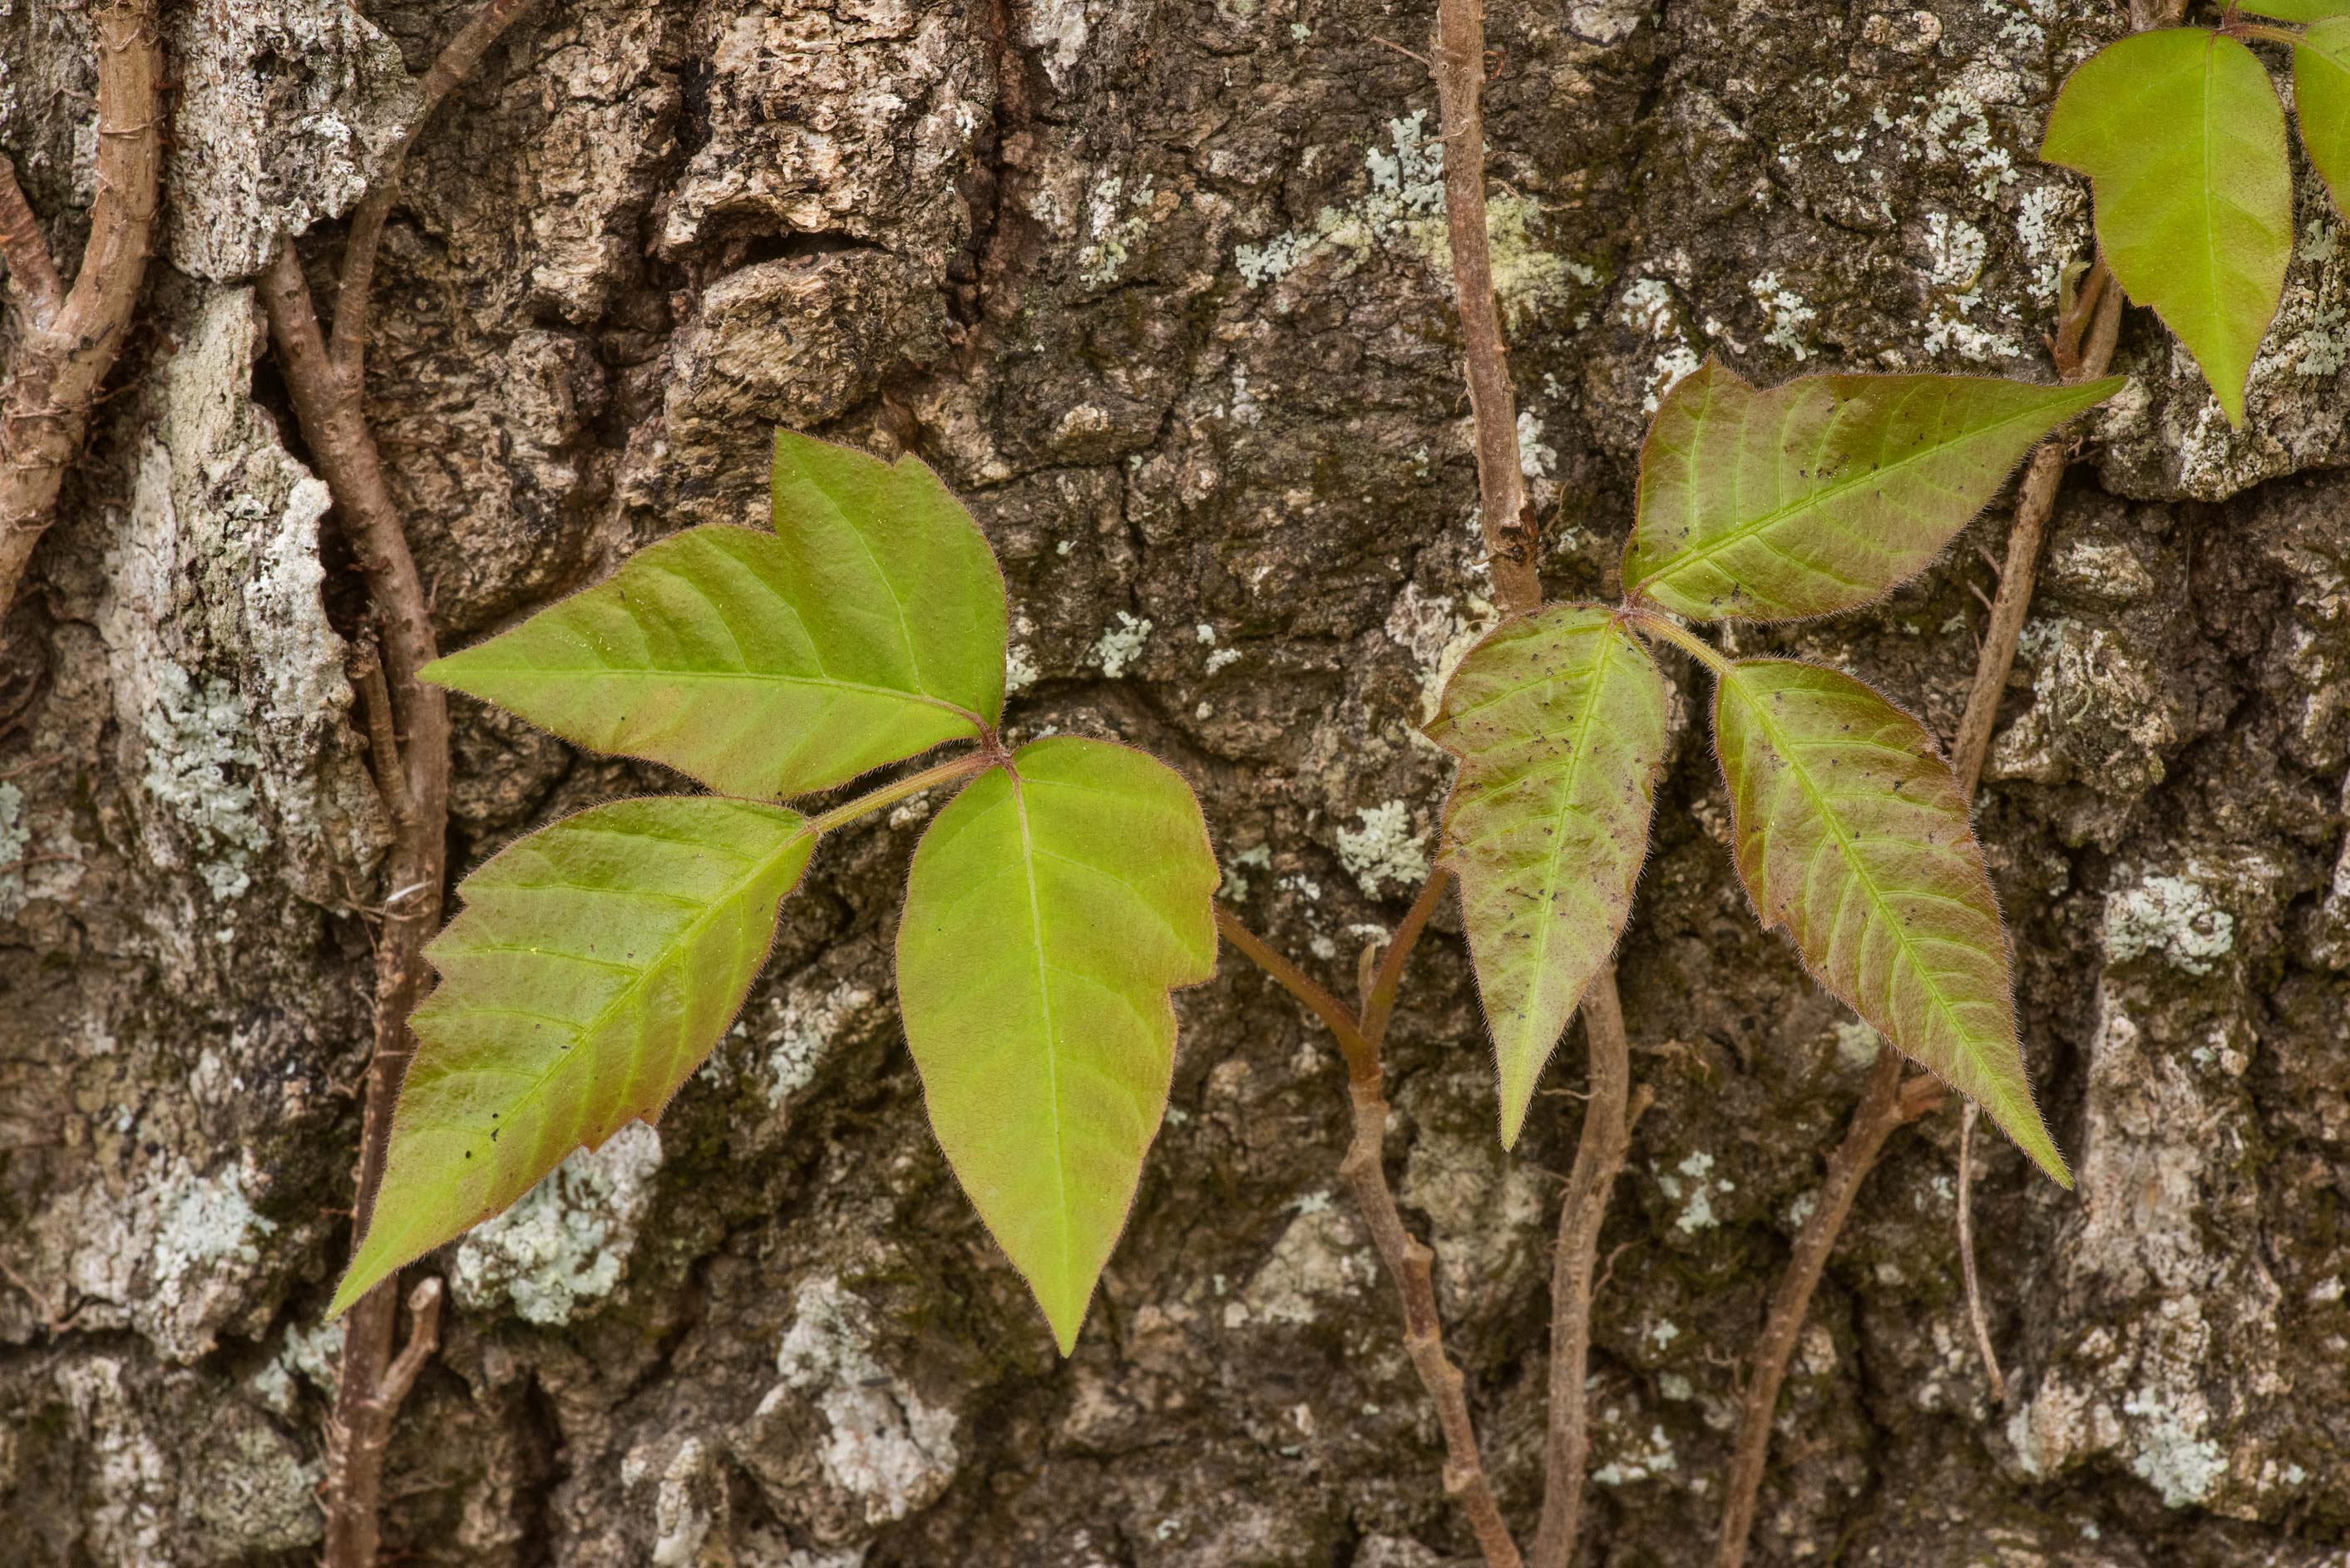 Shoot of poison ivy on an oak tree in Lick Creek Park. College Station, Texas